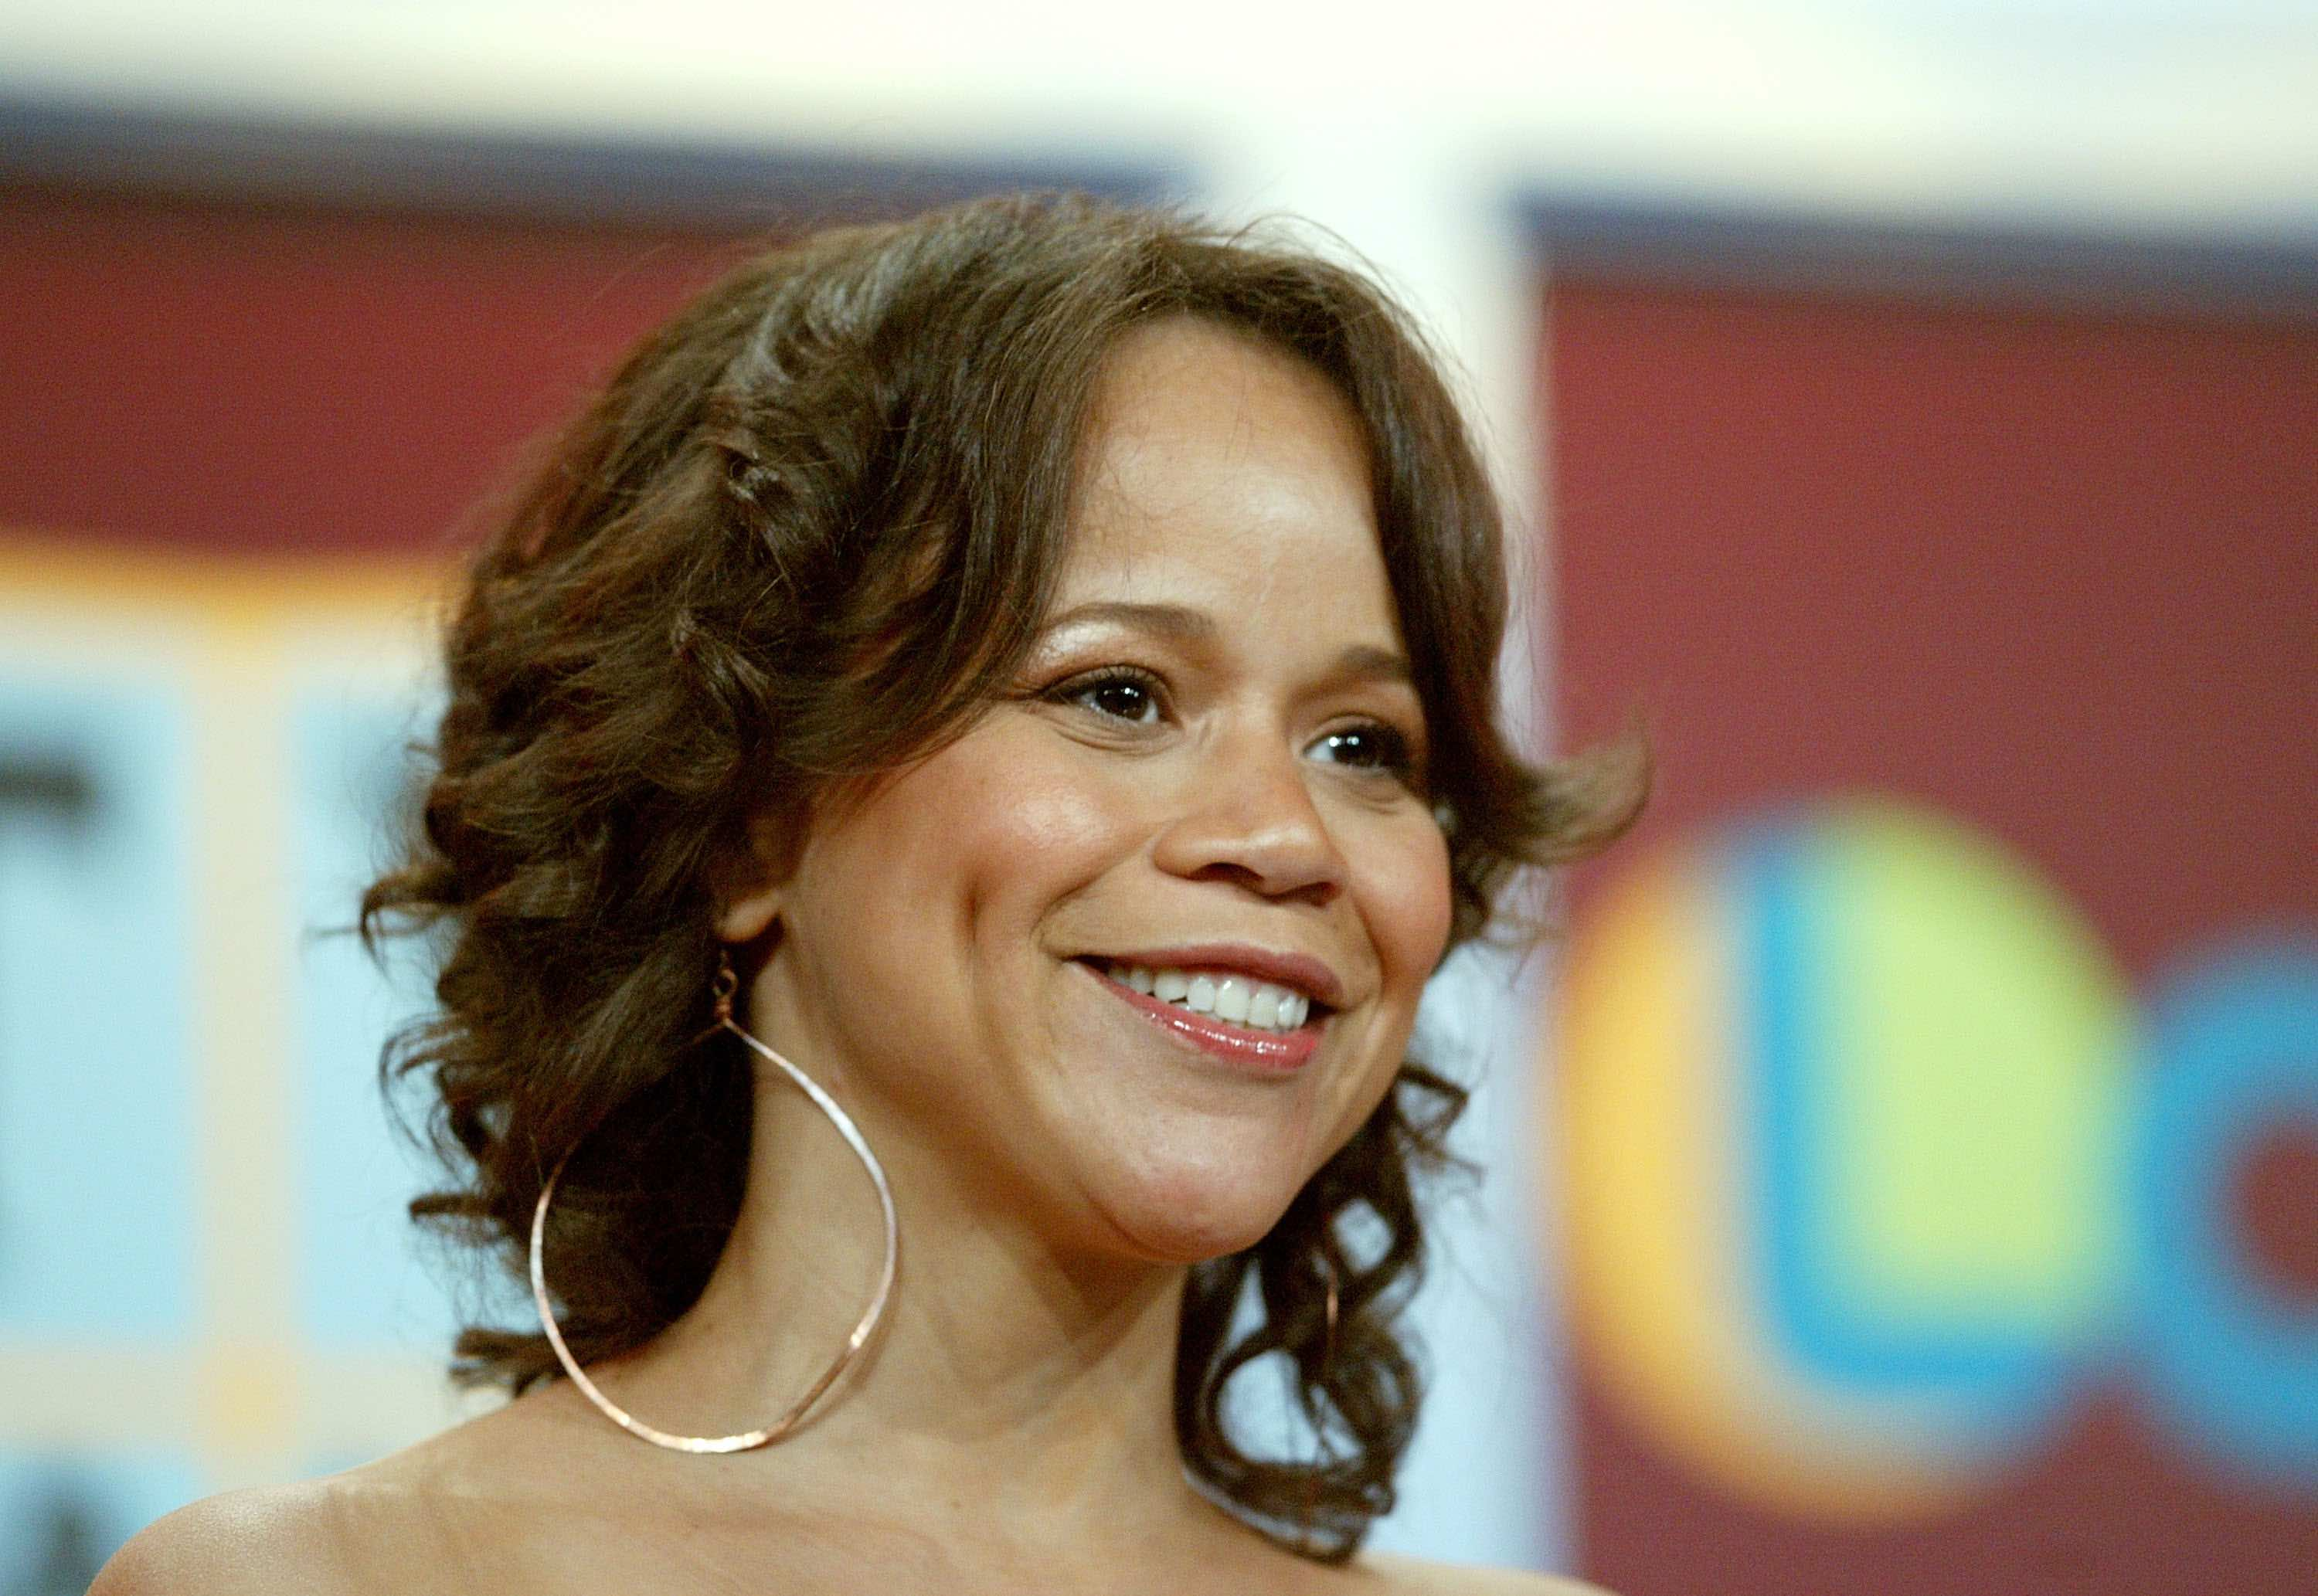 Nuyorican Actress Rosie Perez's 5 Best Movie Roles & Where to Stream Them